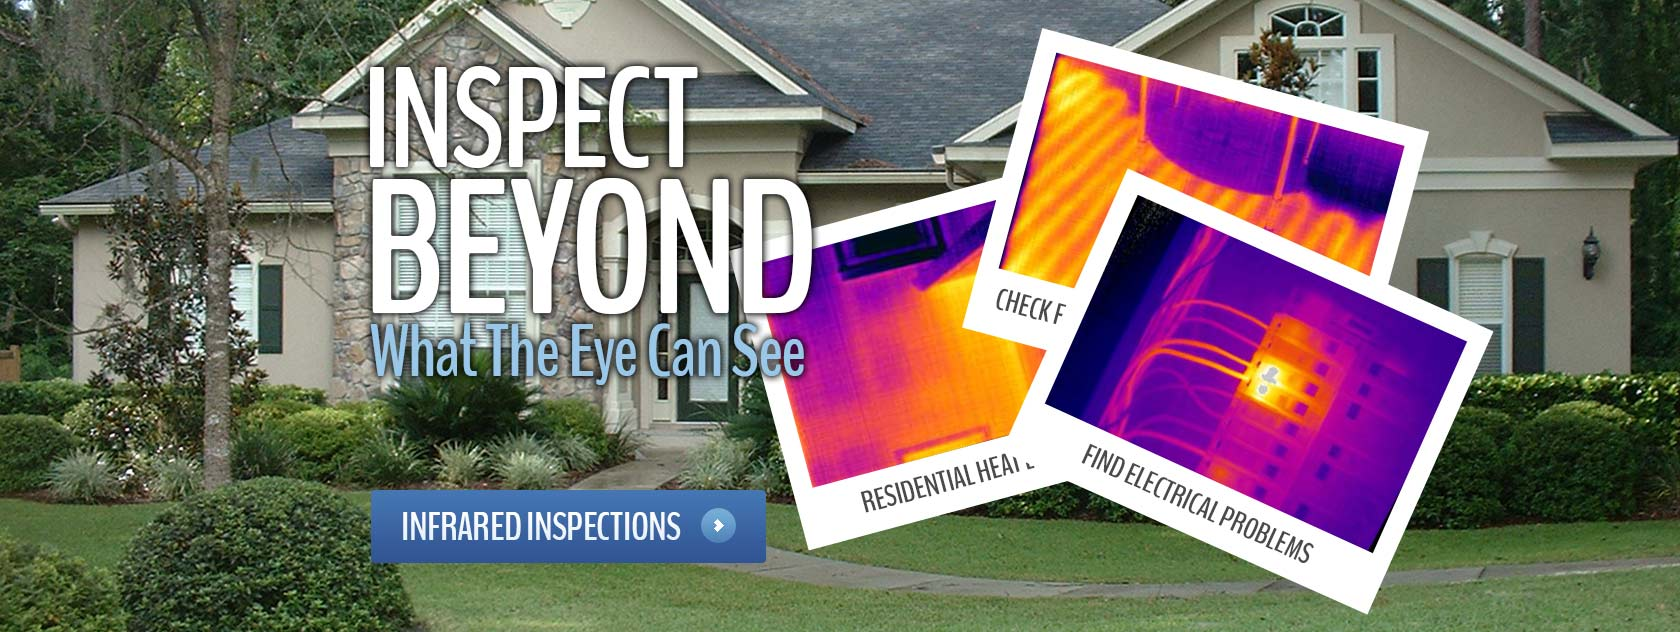 Inspect Beyond What The Eye Can See: Pro Electric Ltd.